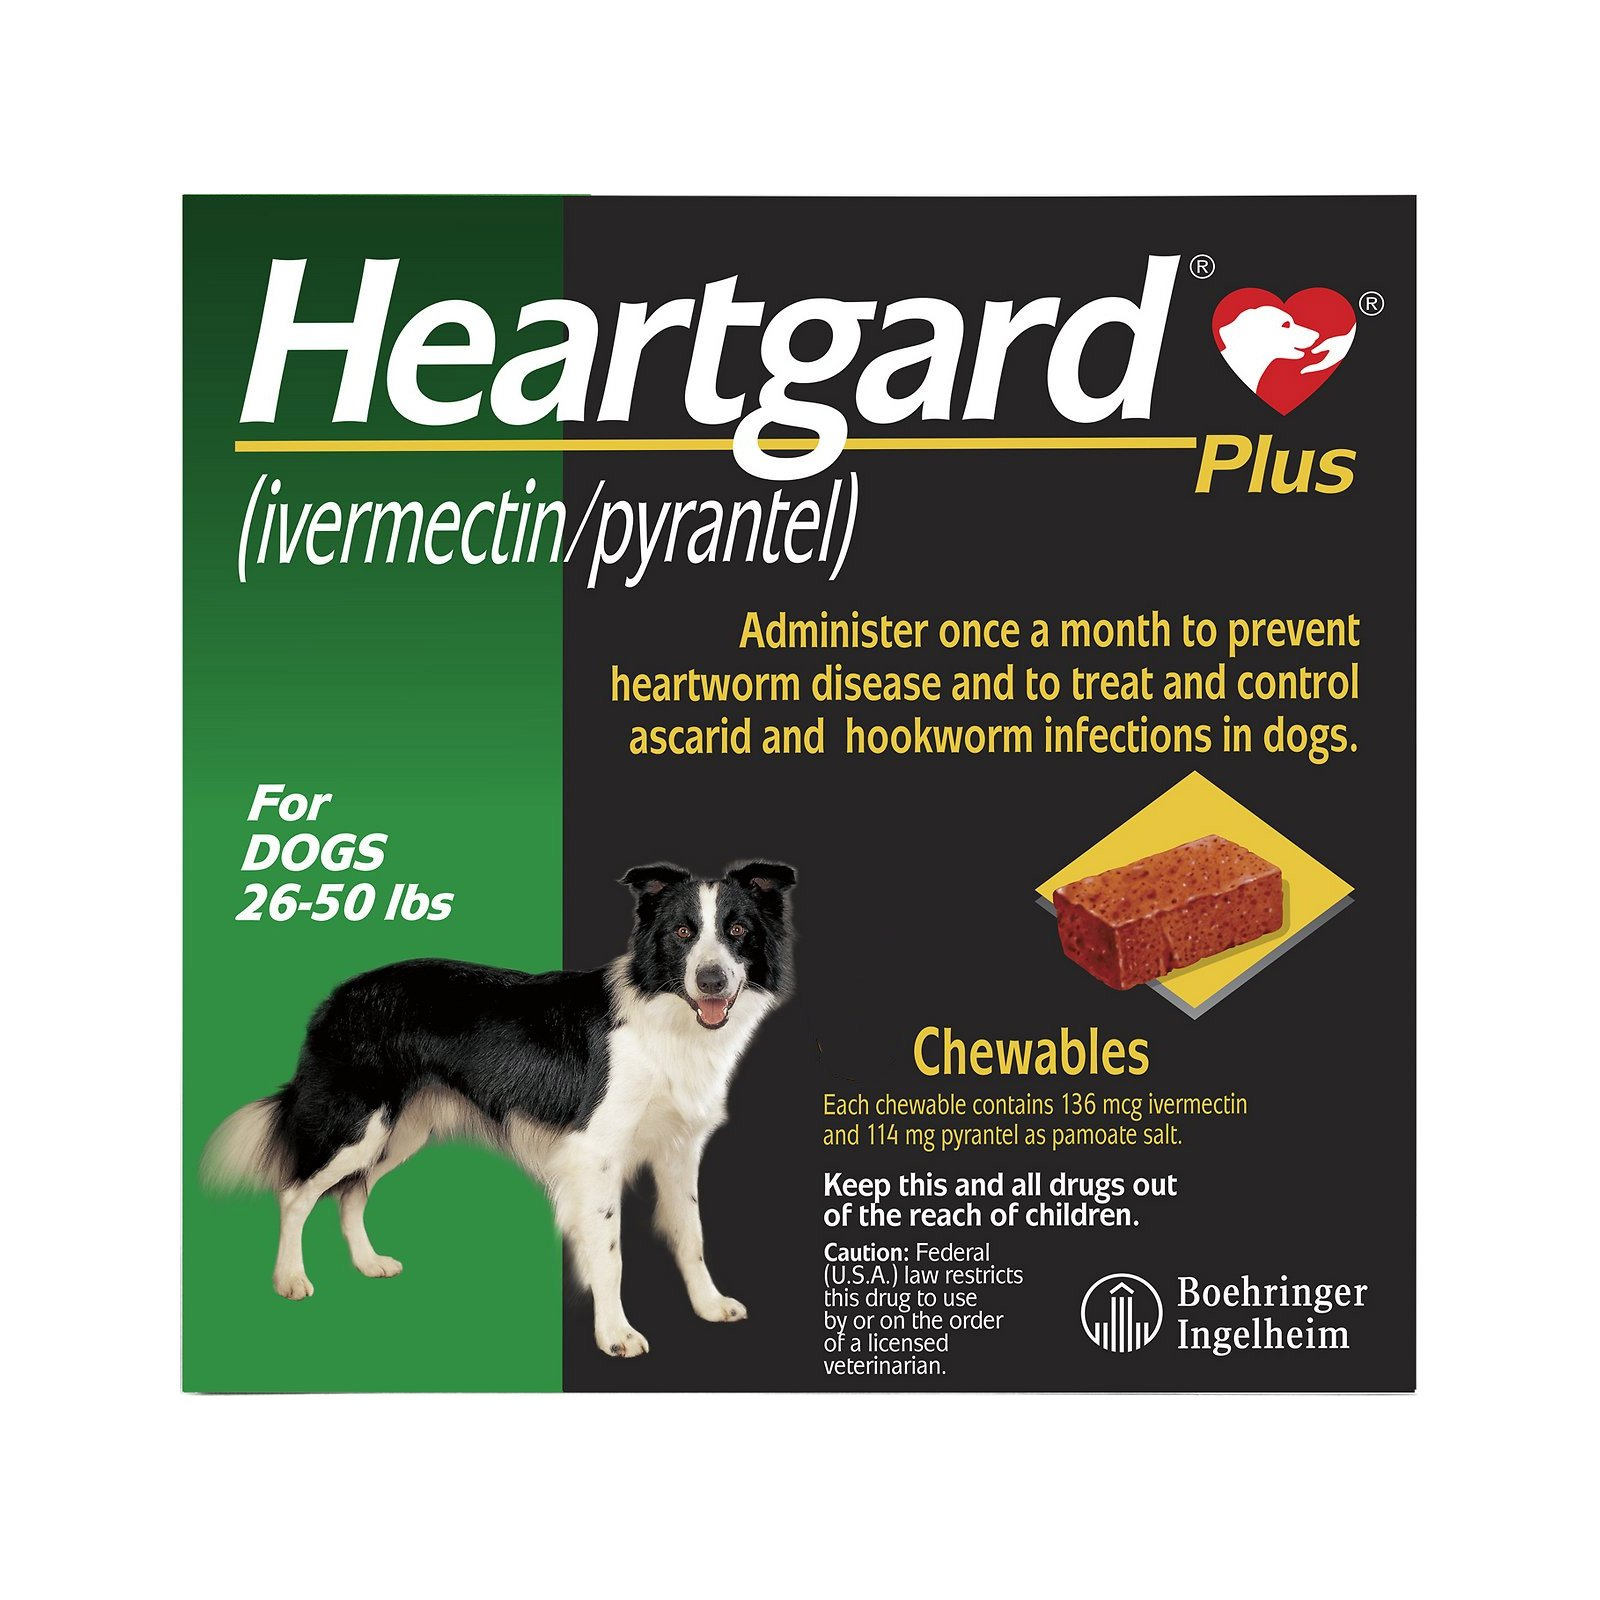 heartgard-plus-chewables-for-medium-dogs-26-50lbs-green